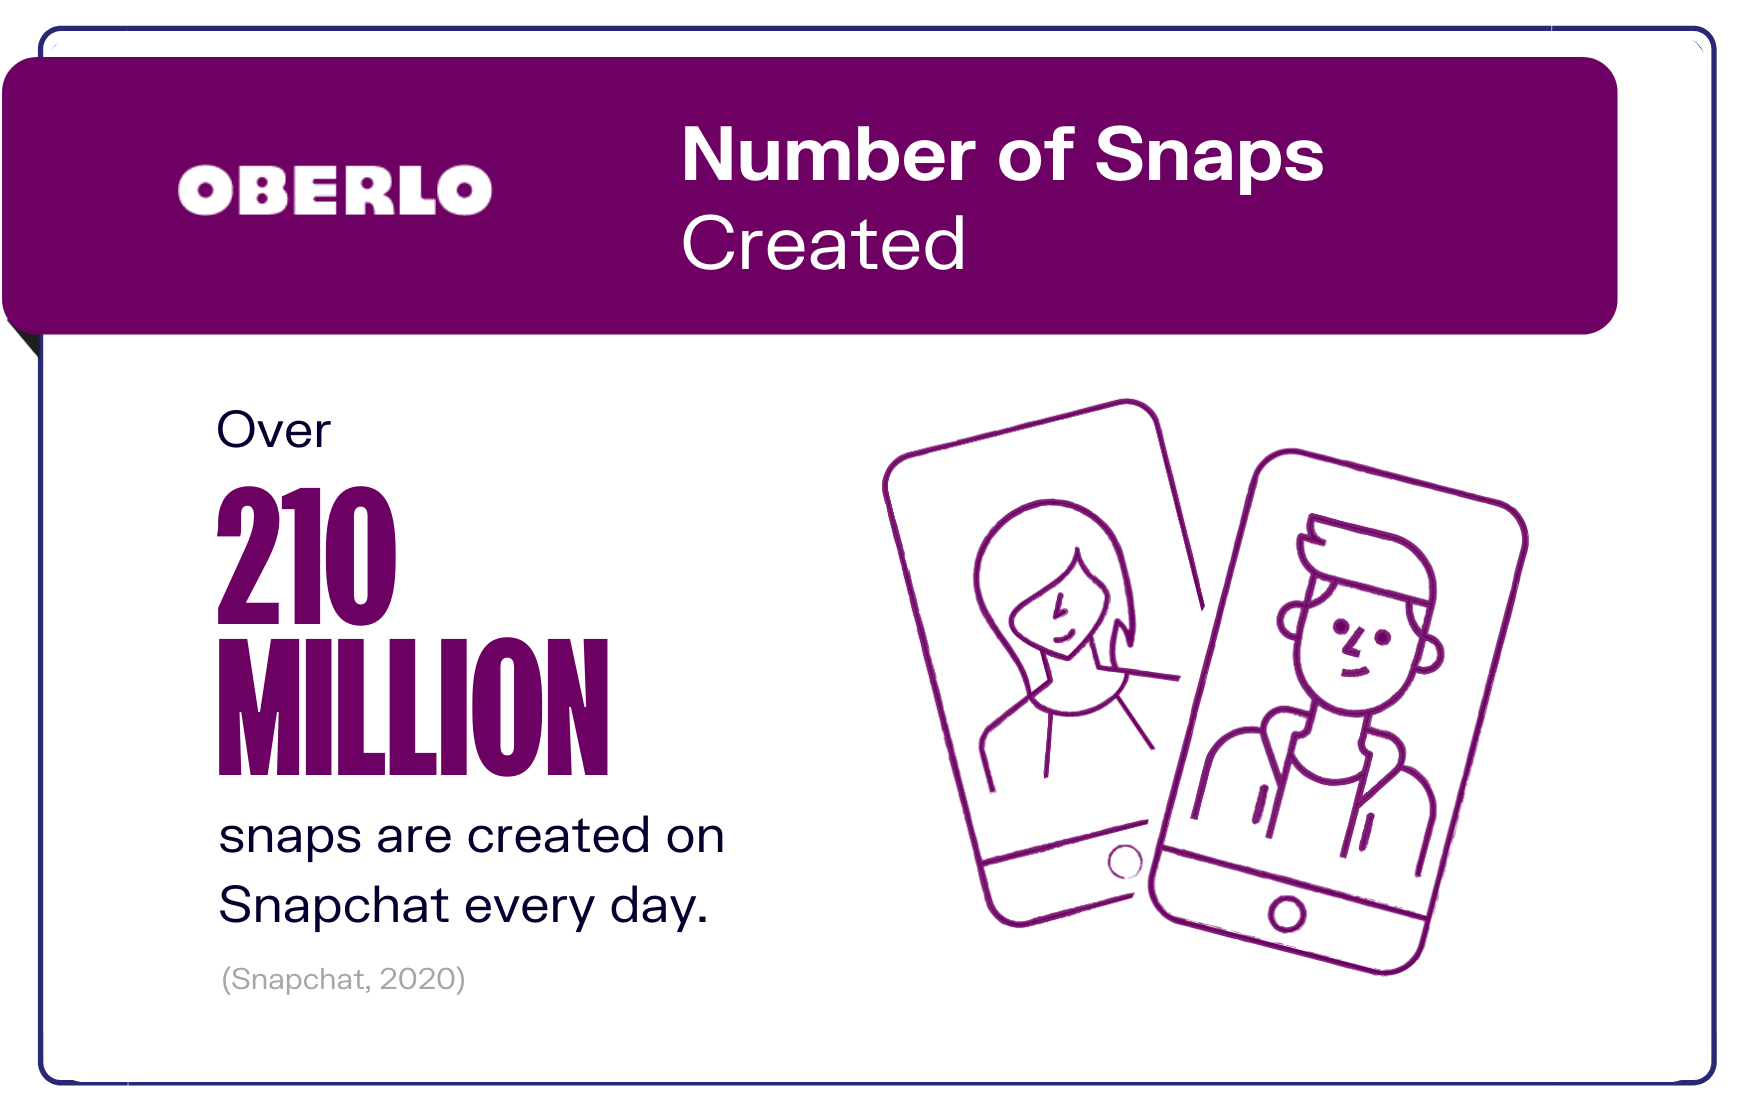 Number of Snaps Created graphic